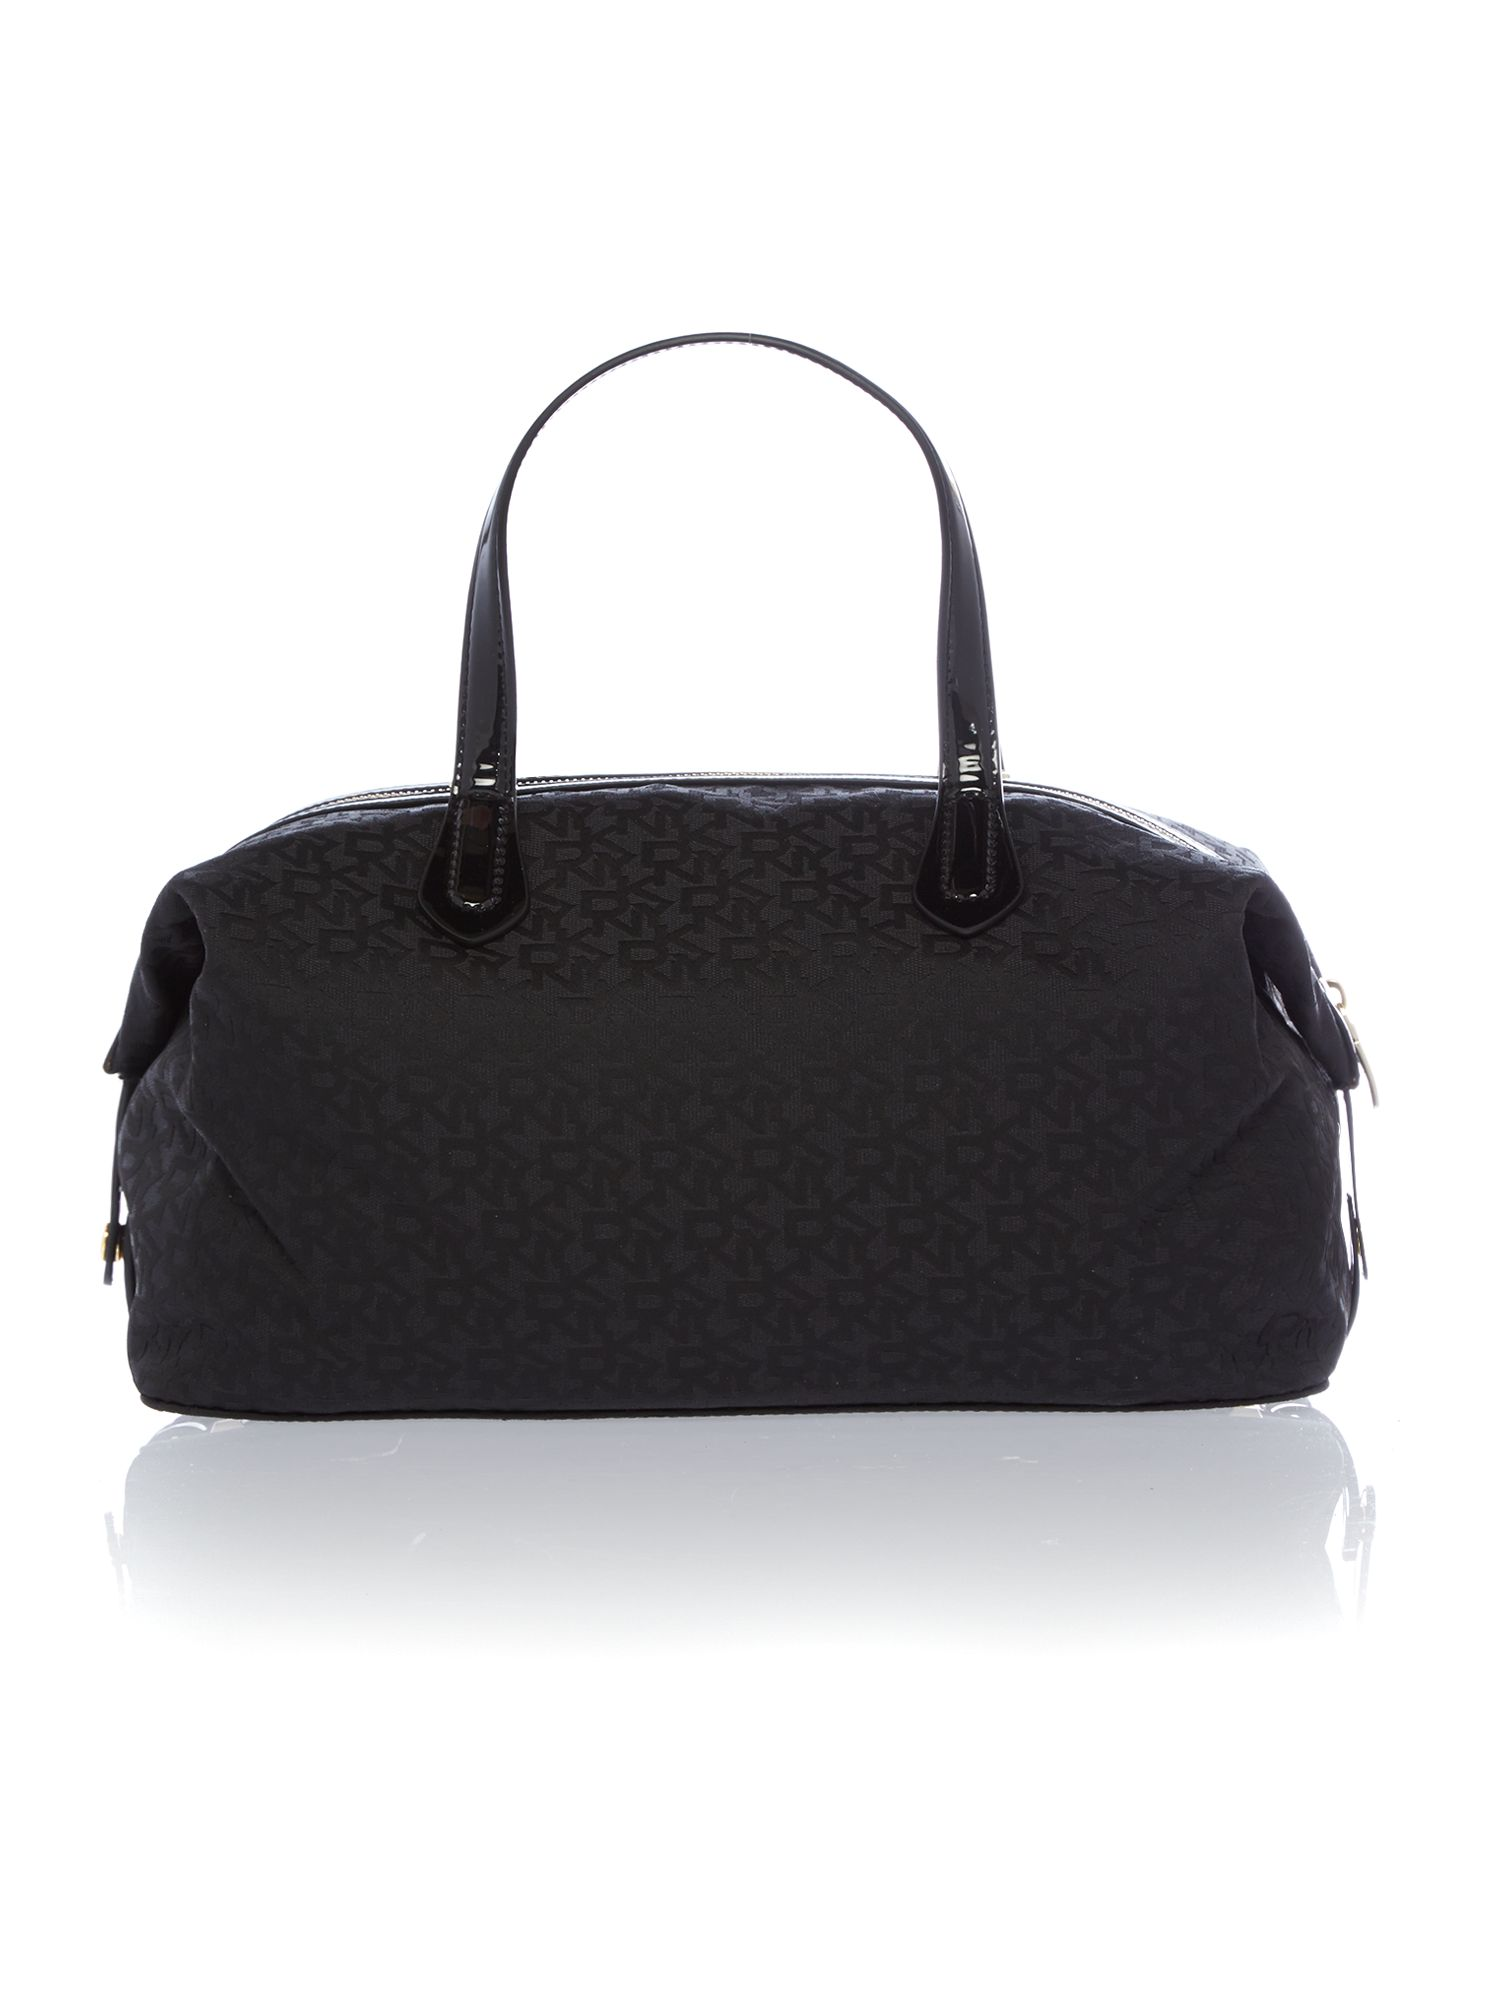 Heritage patent black tote bag